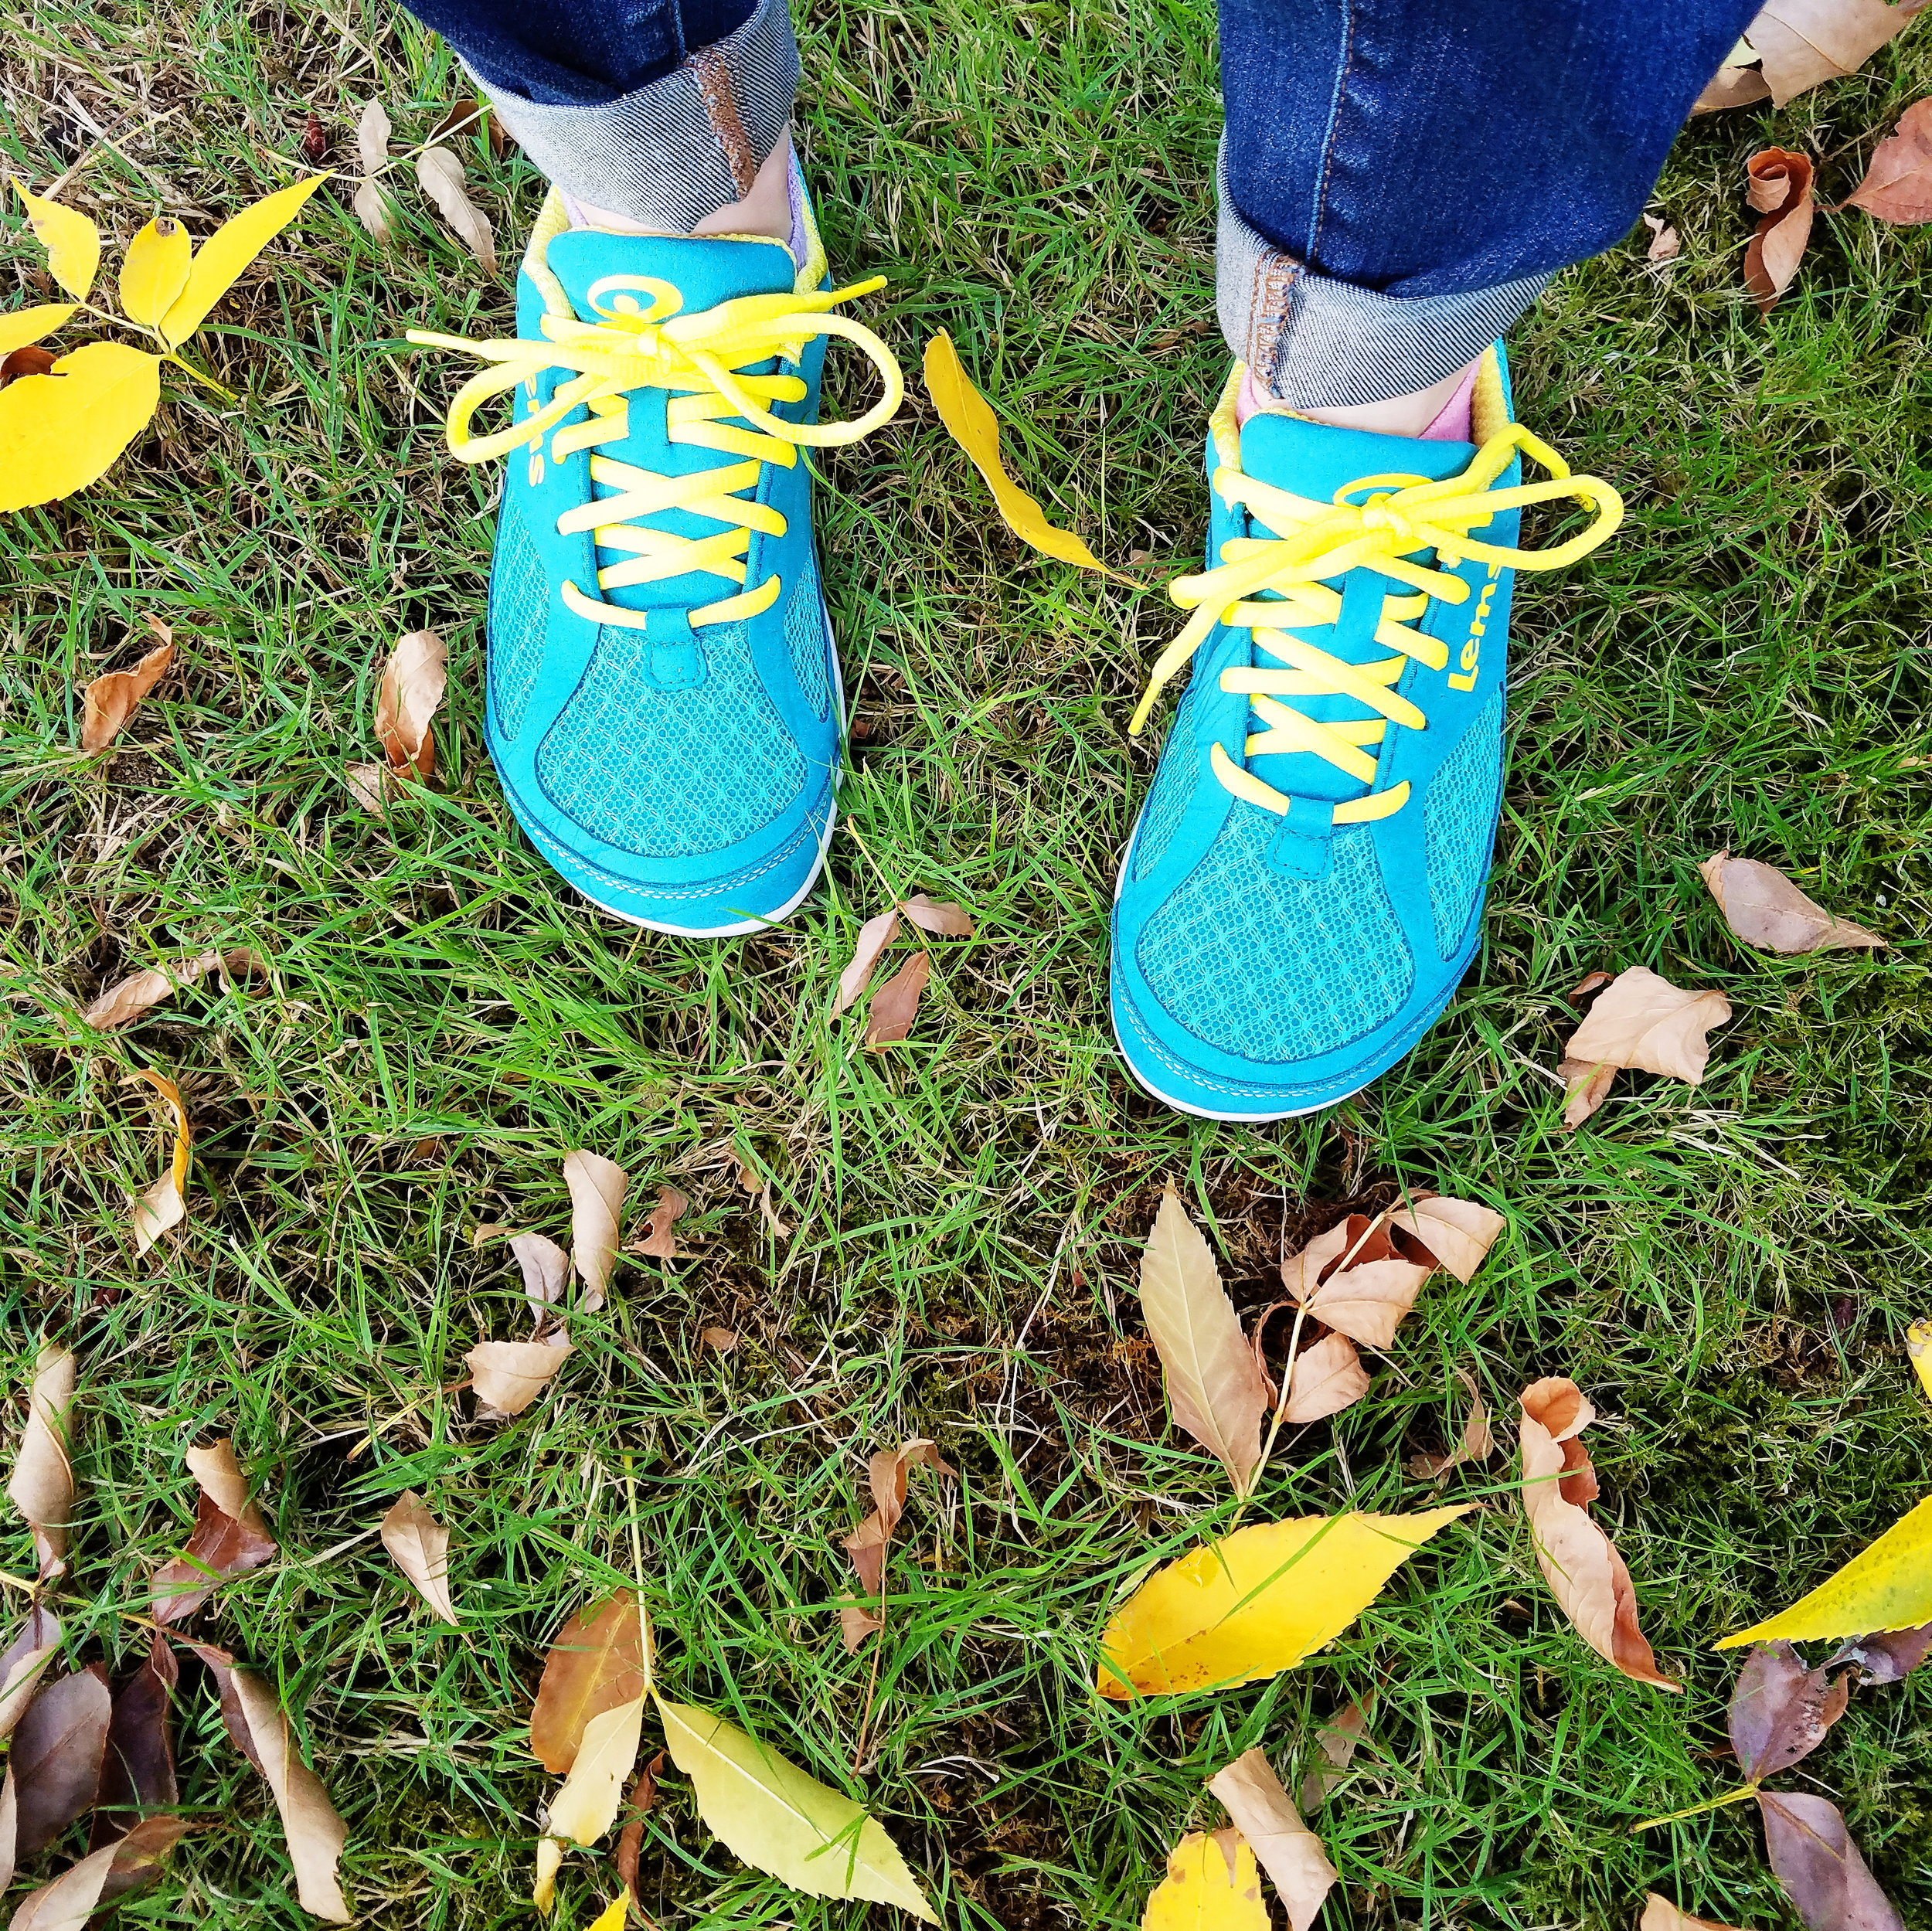 Love my cute new shoes, and the laces match the golden leaves outside my apartment!